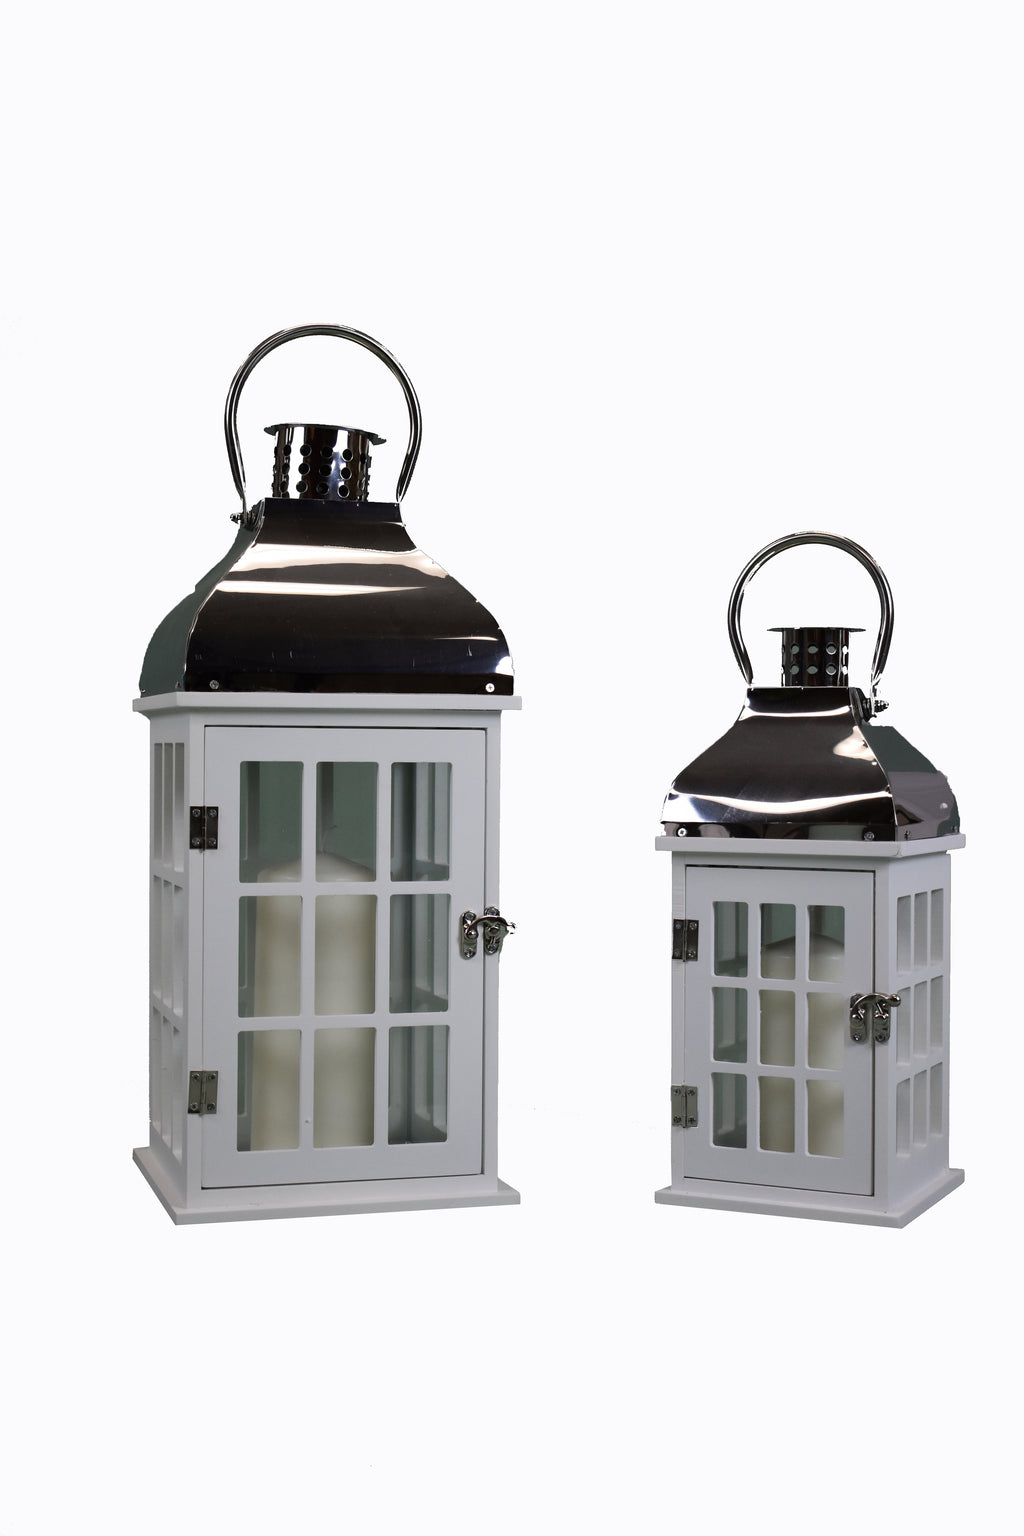 Lantern Welcome Door Set Of 2 FREE 4-Day Shipping